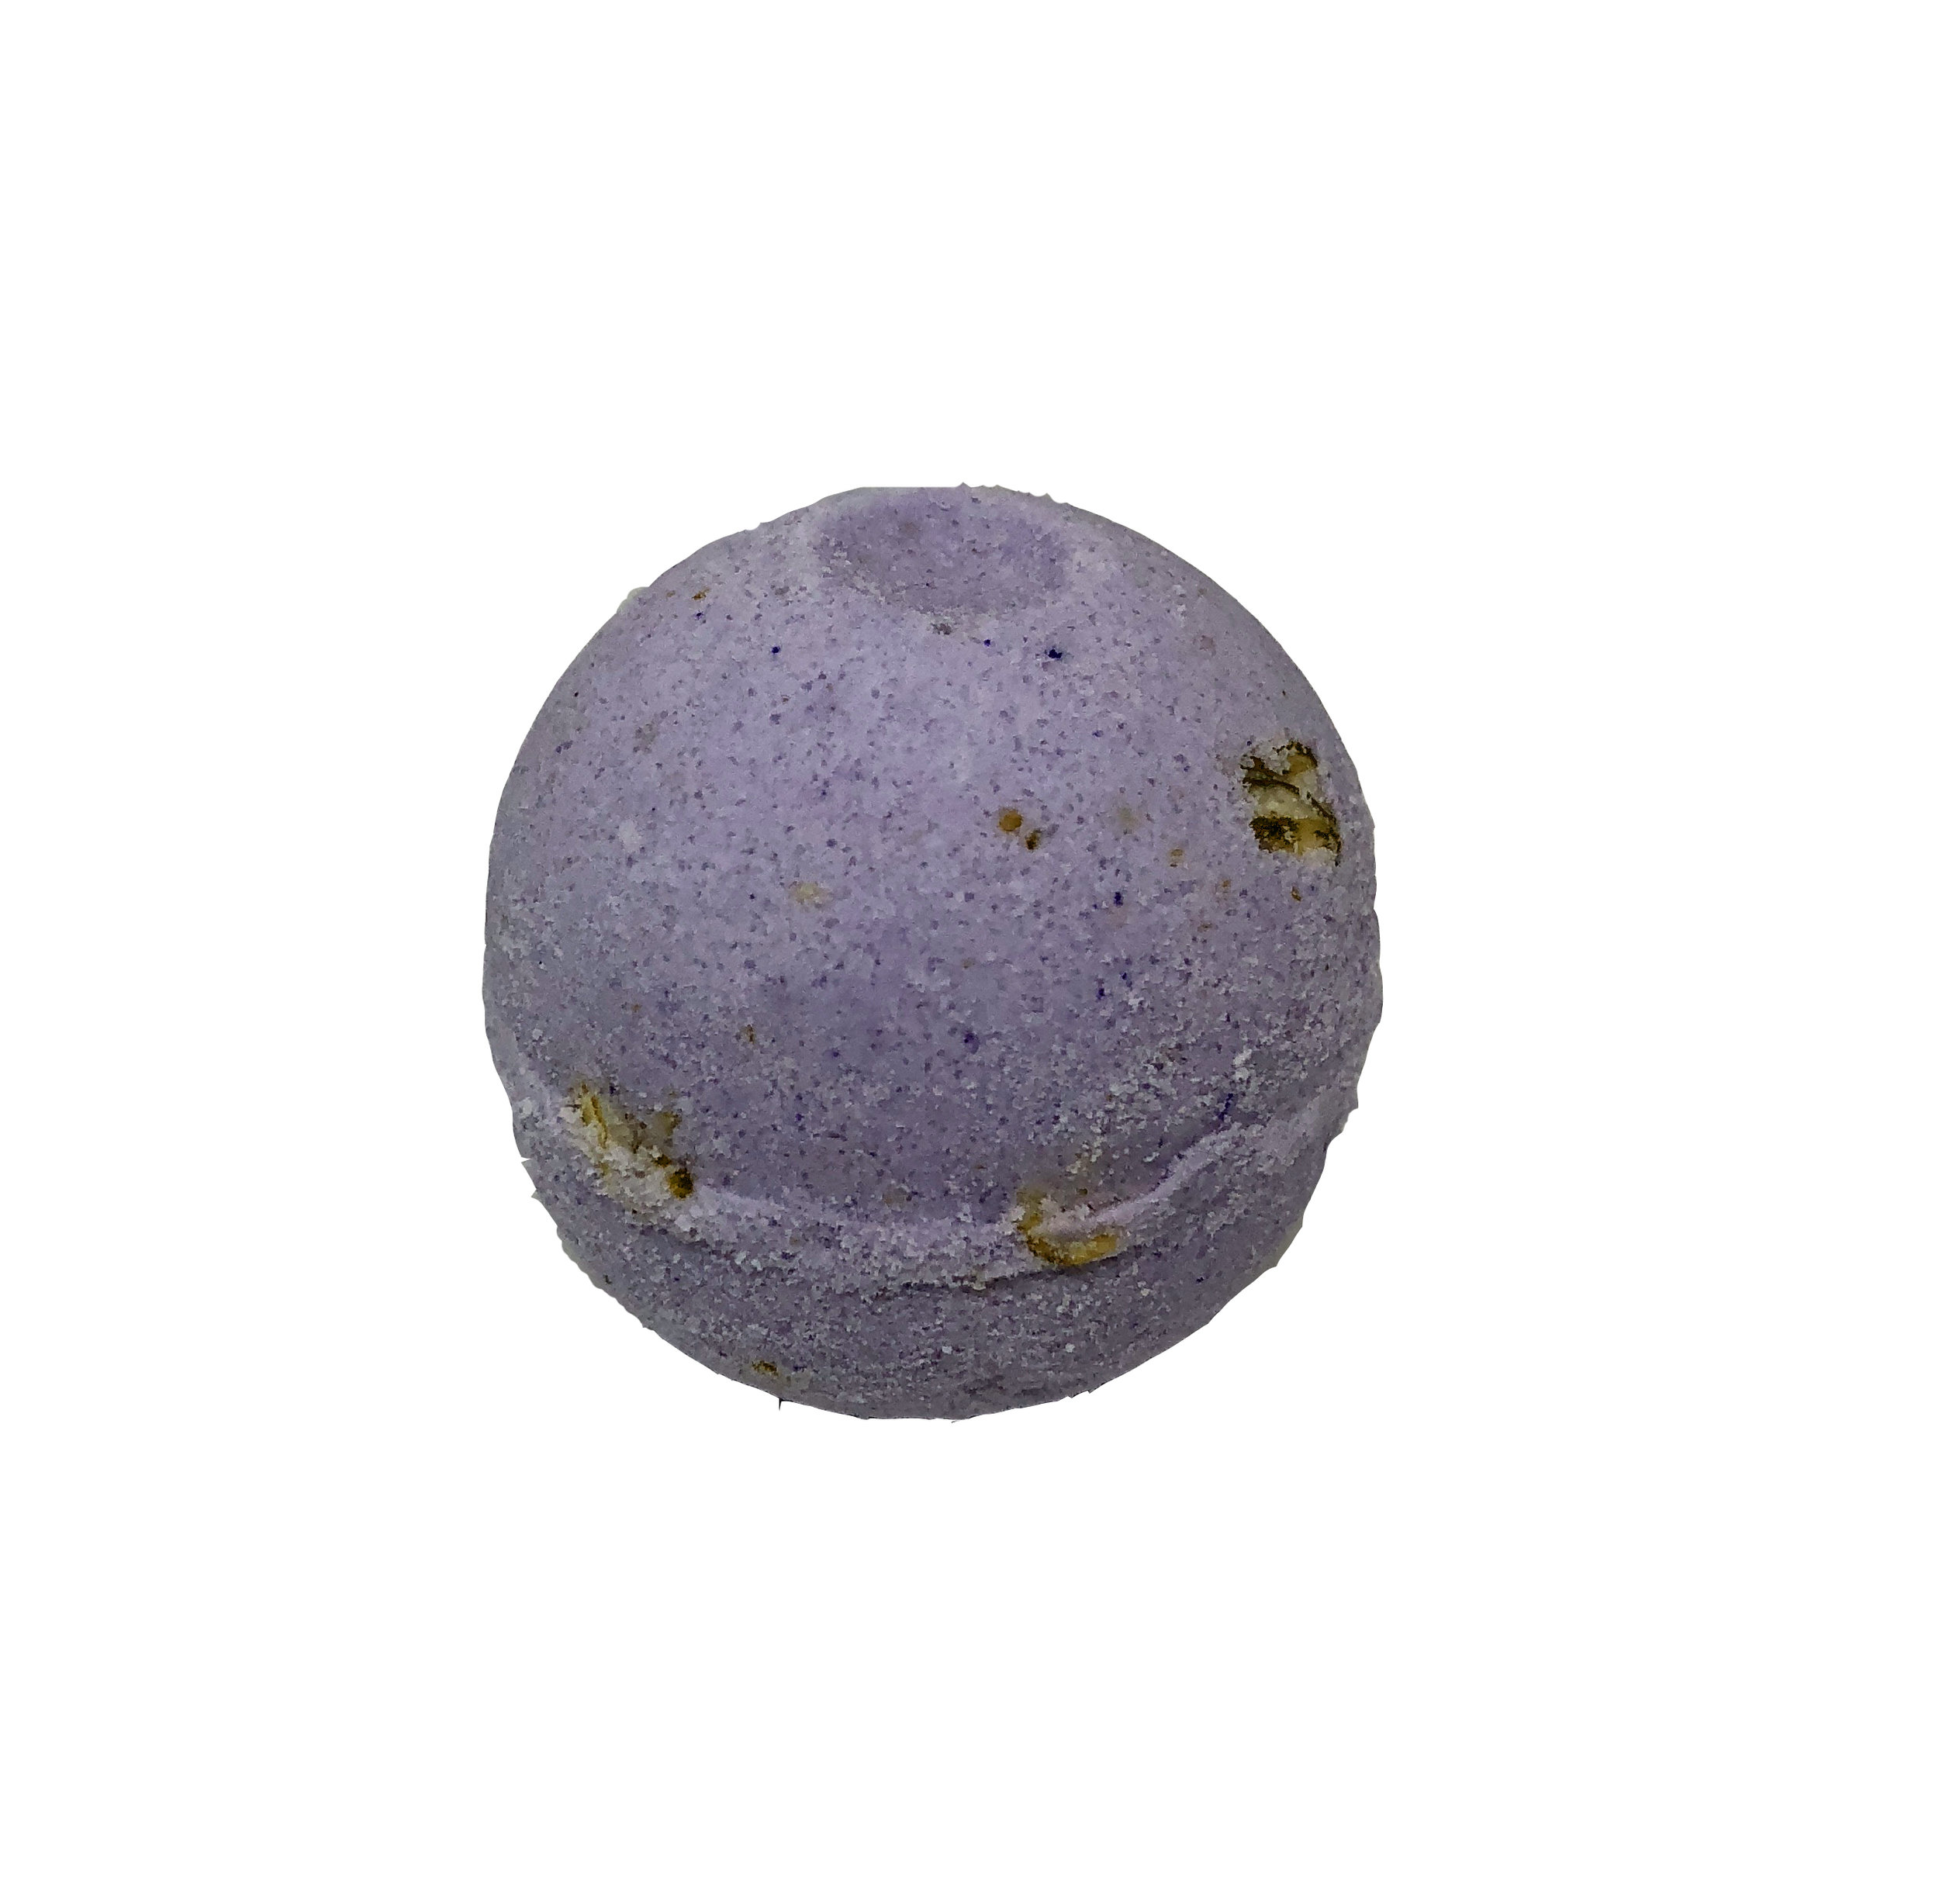 Soothing/ Hydrating - This oat-filled spa bomb is designed to deeply nourish and heal dry, cracked, or sensitized skin. A blend of ultra nourishing oils like argan, sweet almond, cocoa butter, and arnica work together with the soothing oats and essential oils to treat dry, sensitive skin perfectly. Lavender and palmarosa essential oils help skin retain moisture and add extra relief.